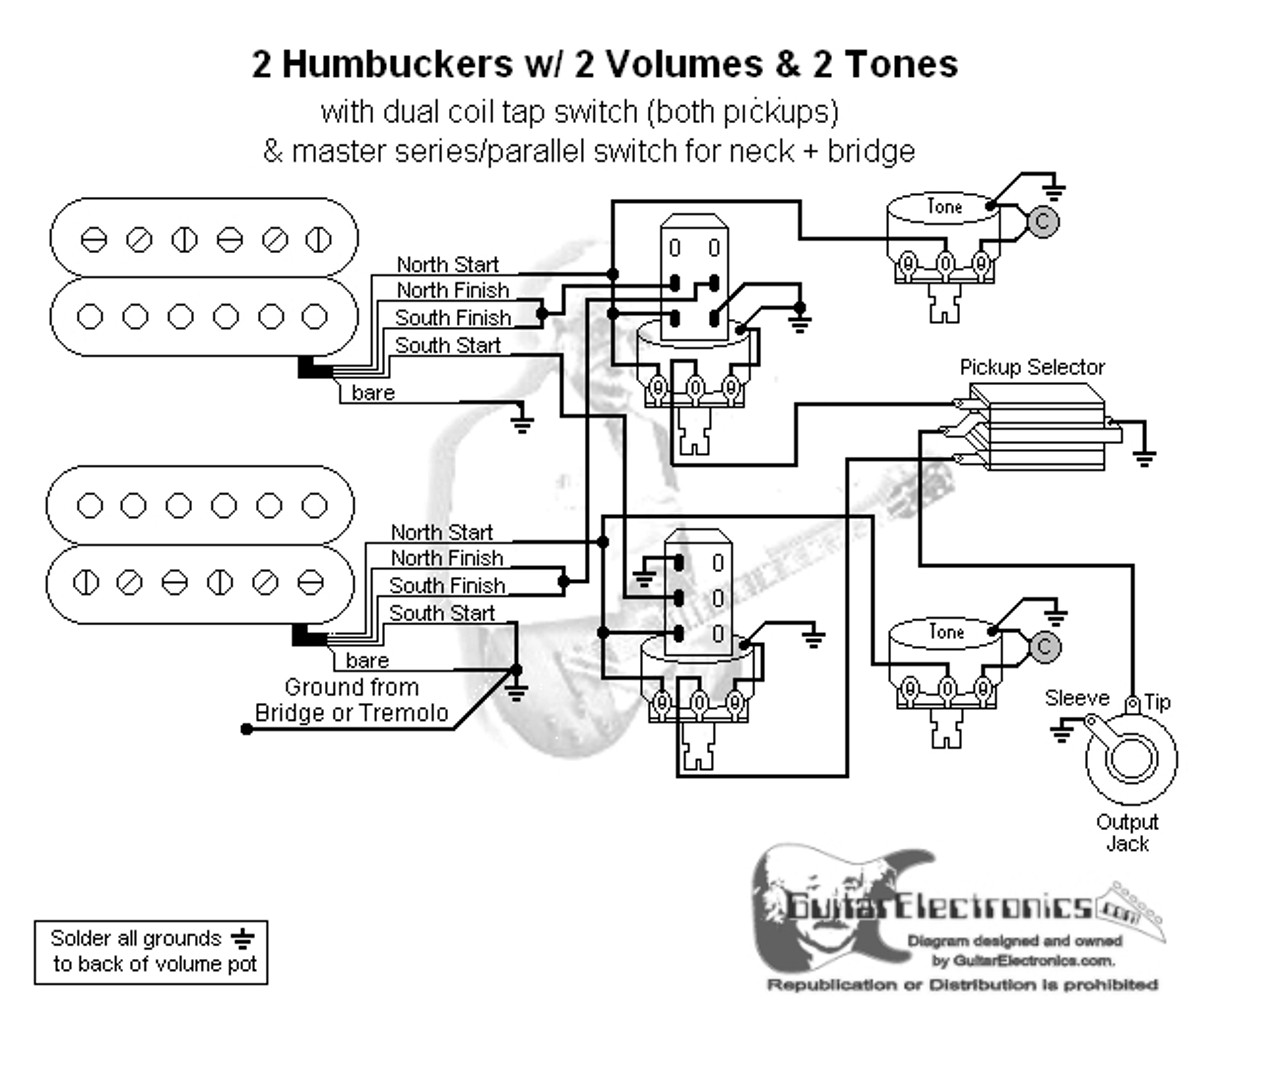 2 humbuckers 3 way toggle switch 2 volumes 2 tones coil tap \u0026 series parallel Photoelectric Switch Wiring Diagram